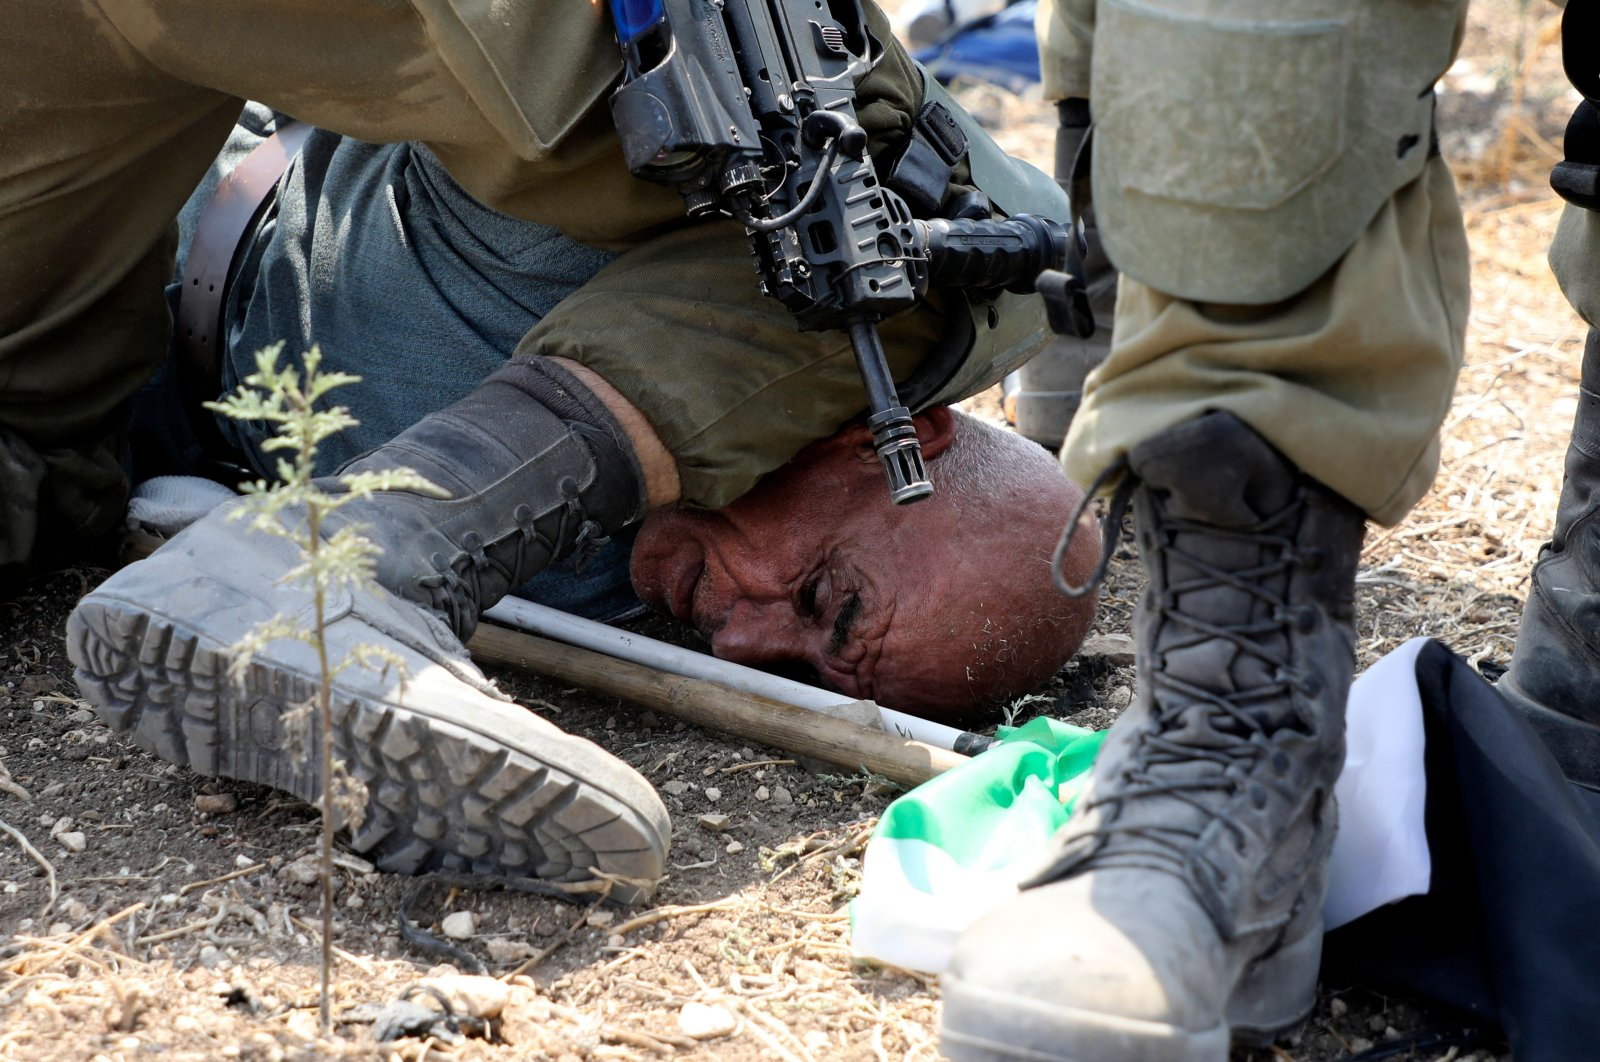 Israeli soldiers detain a Palestinian protester during a demonstration against the Israeli settlement expansion in the village of Shufah, southeast of Tulkarm in the occupied West Bank, Sept. 1, 2020. (AFP Photo)